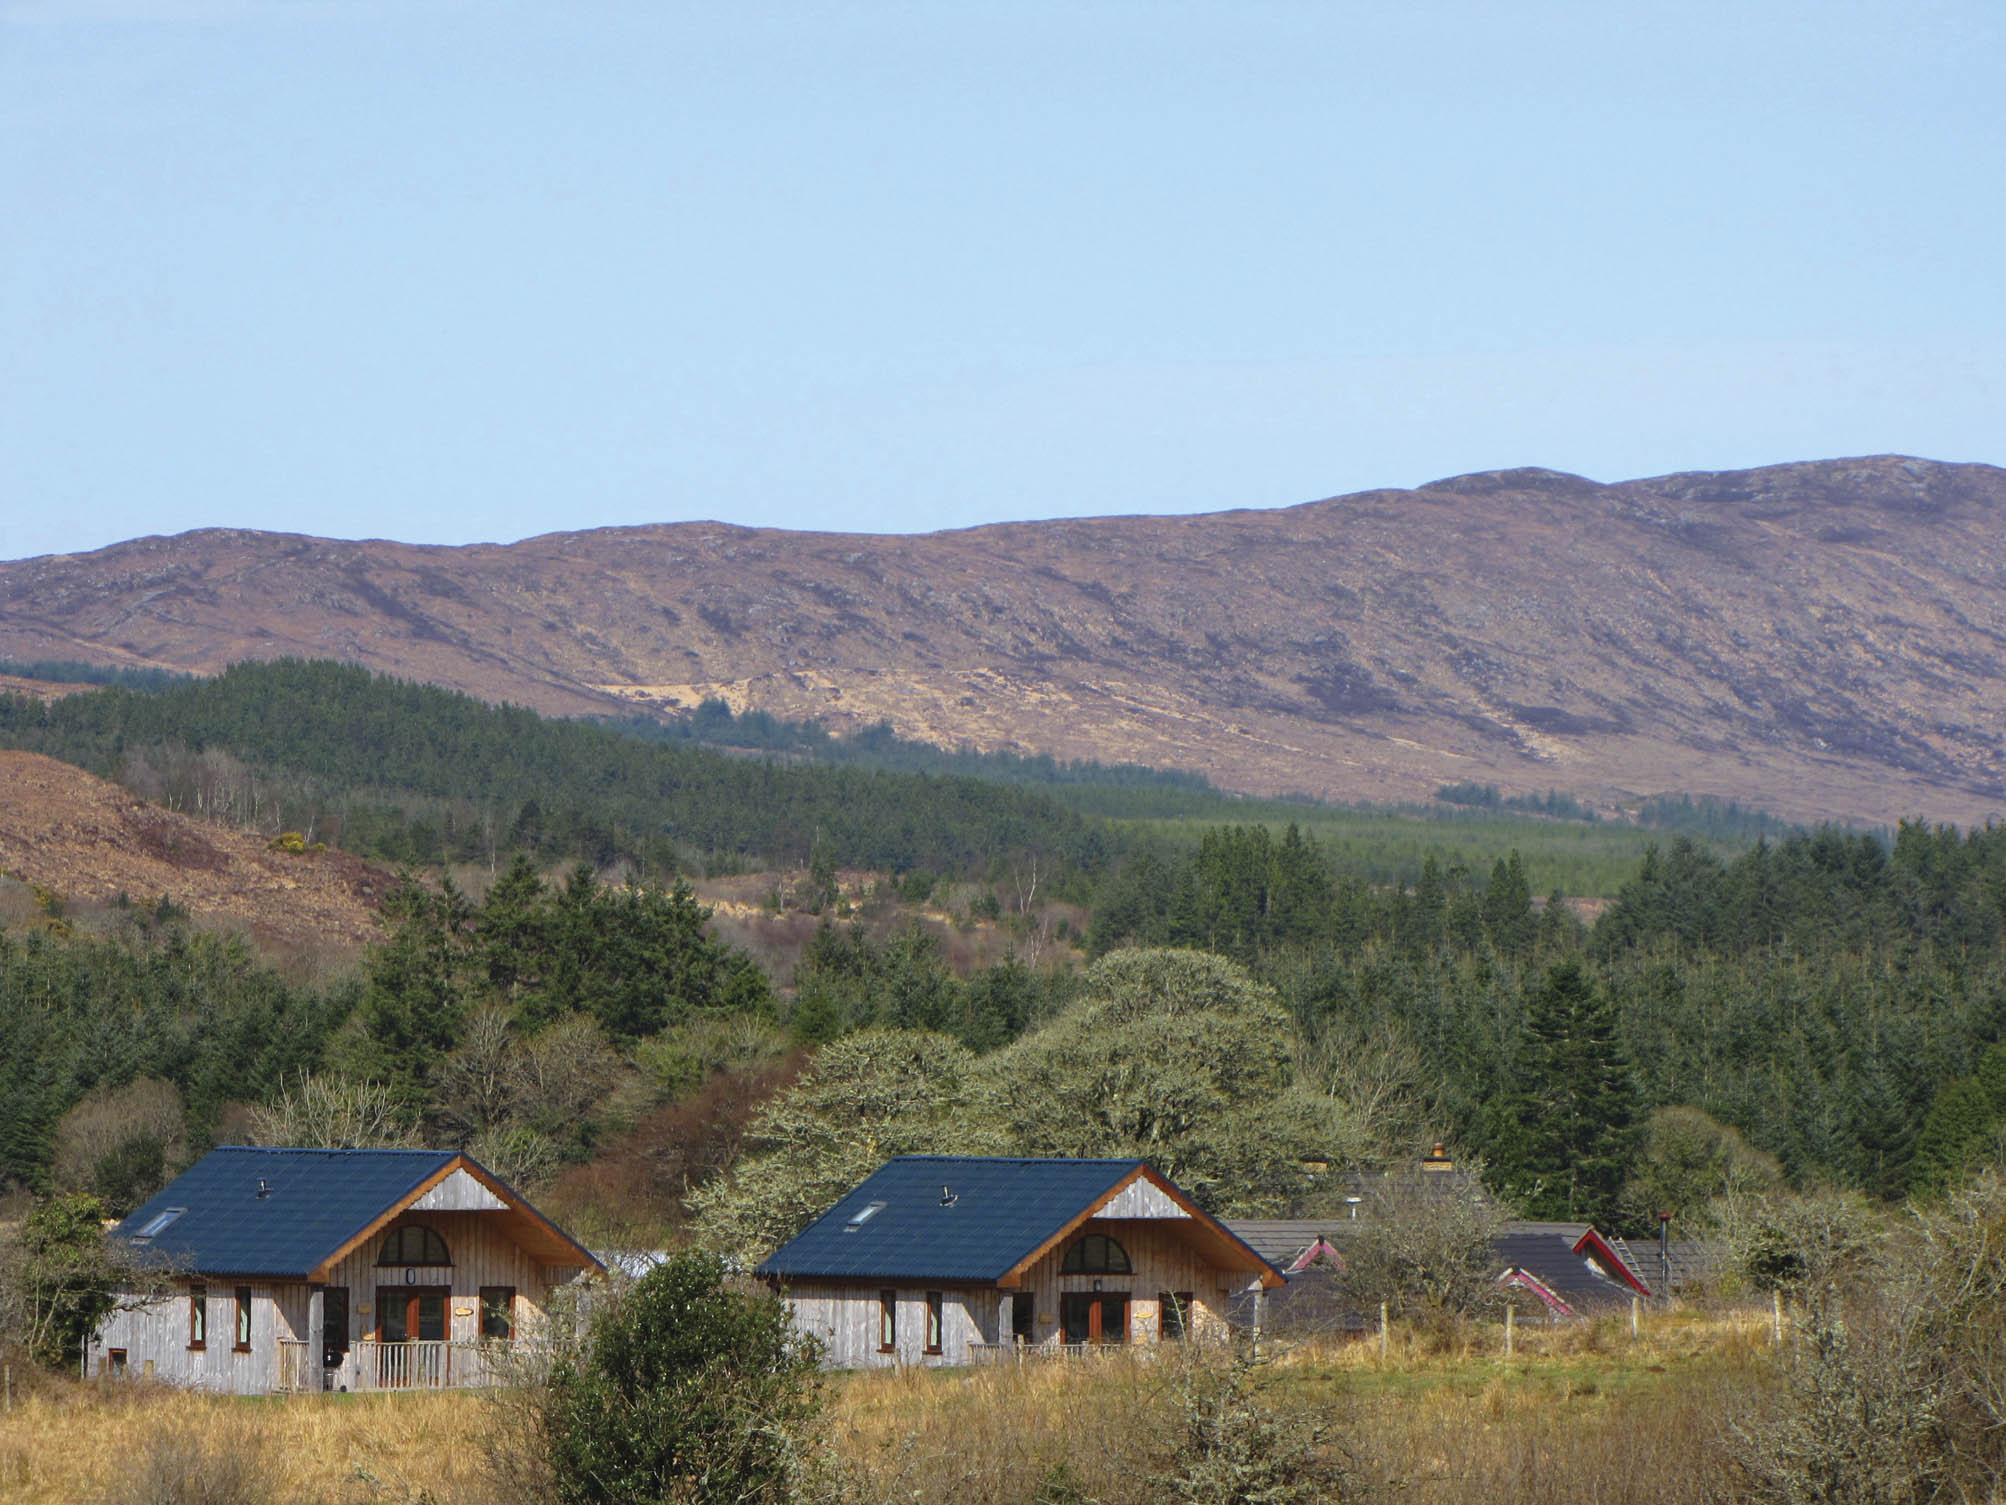 The cabins at Ard Nahoo, Co. Leitrim, where the importance of simple pleasures is emphasized.